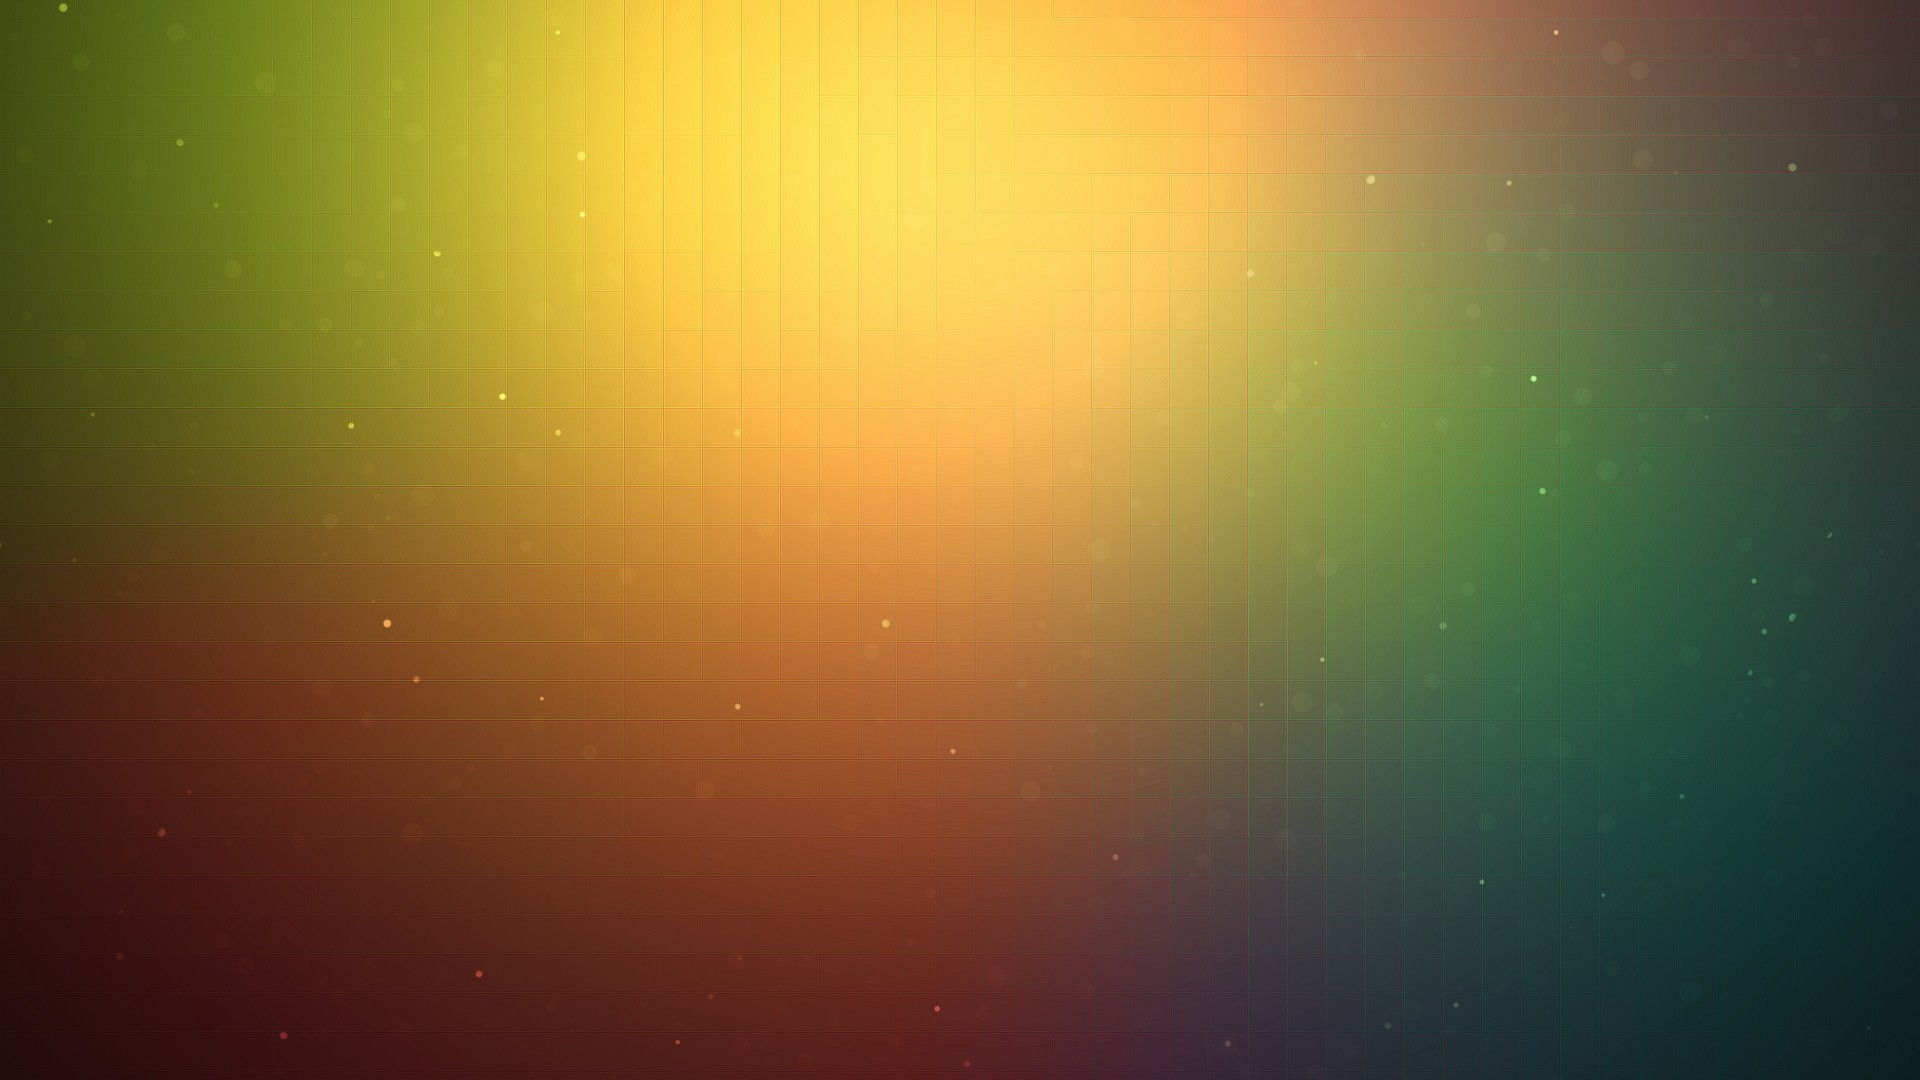 1920x1080 Plain Wallpapers HD A9